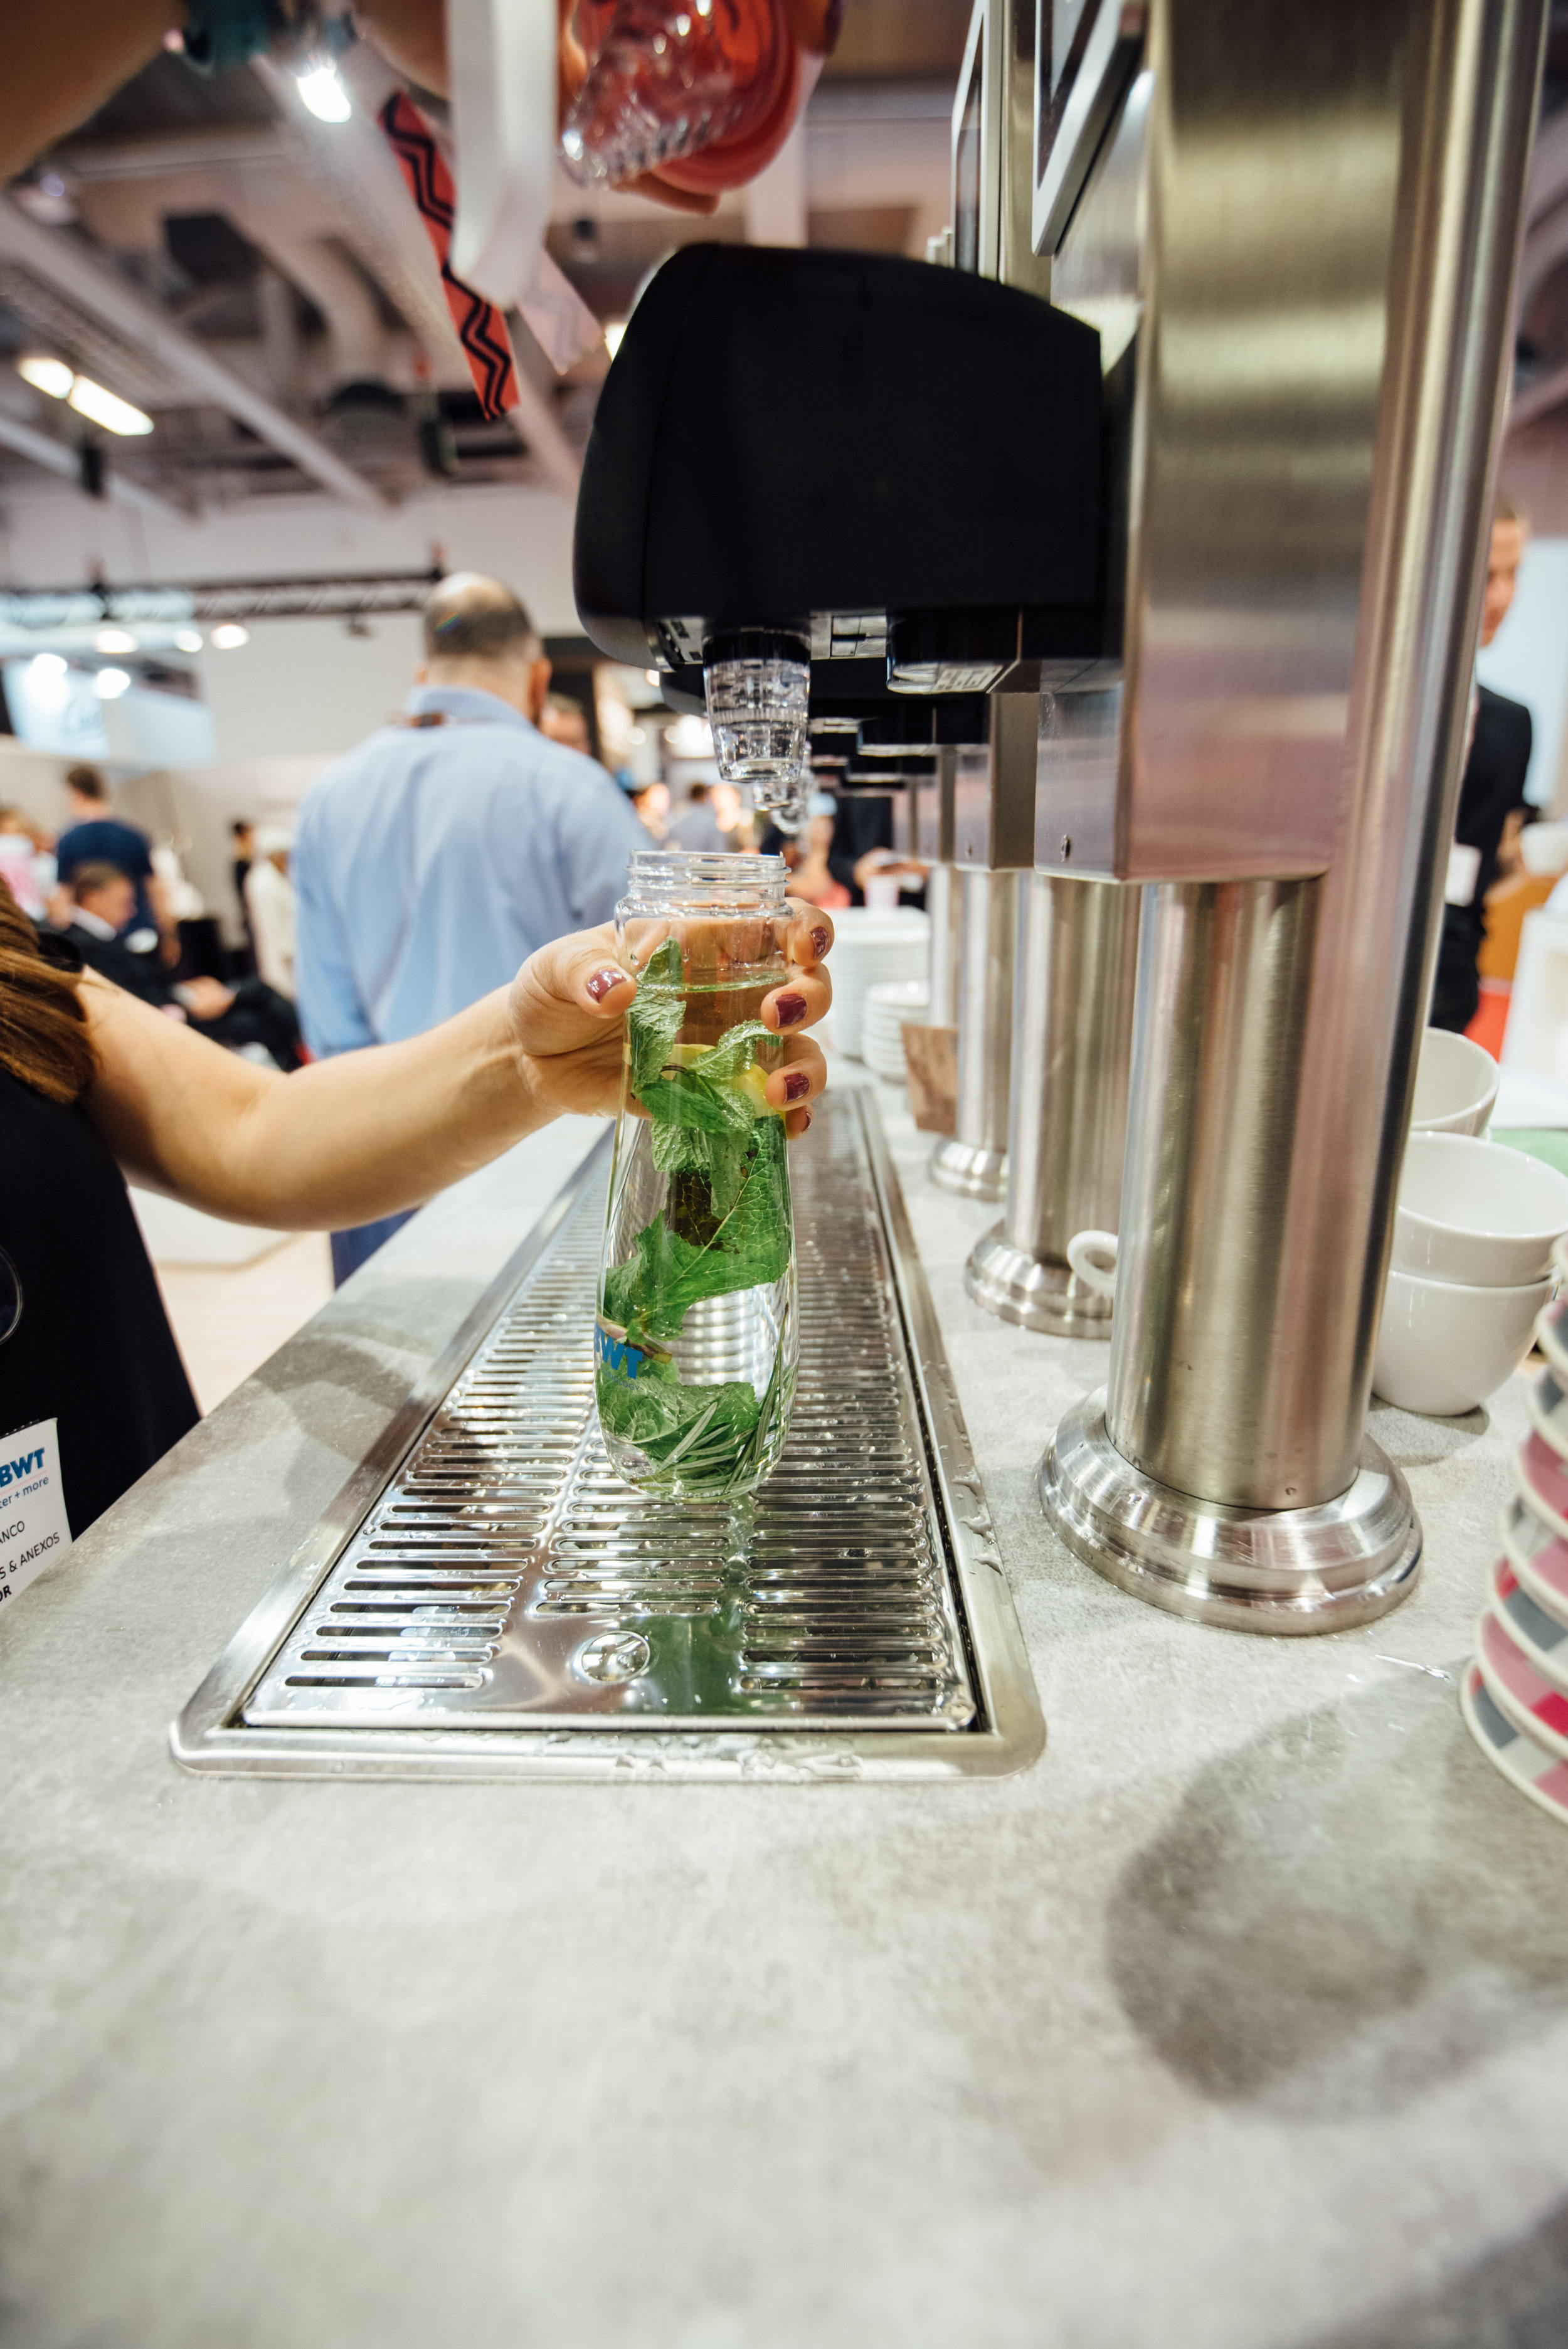 This year, BWT water+more has been keeping #WOCBerlin visitors hydrated with herb-infused water available from their stand in Hall 1. -